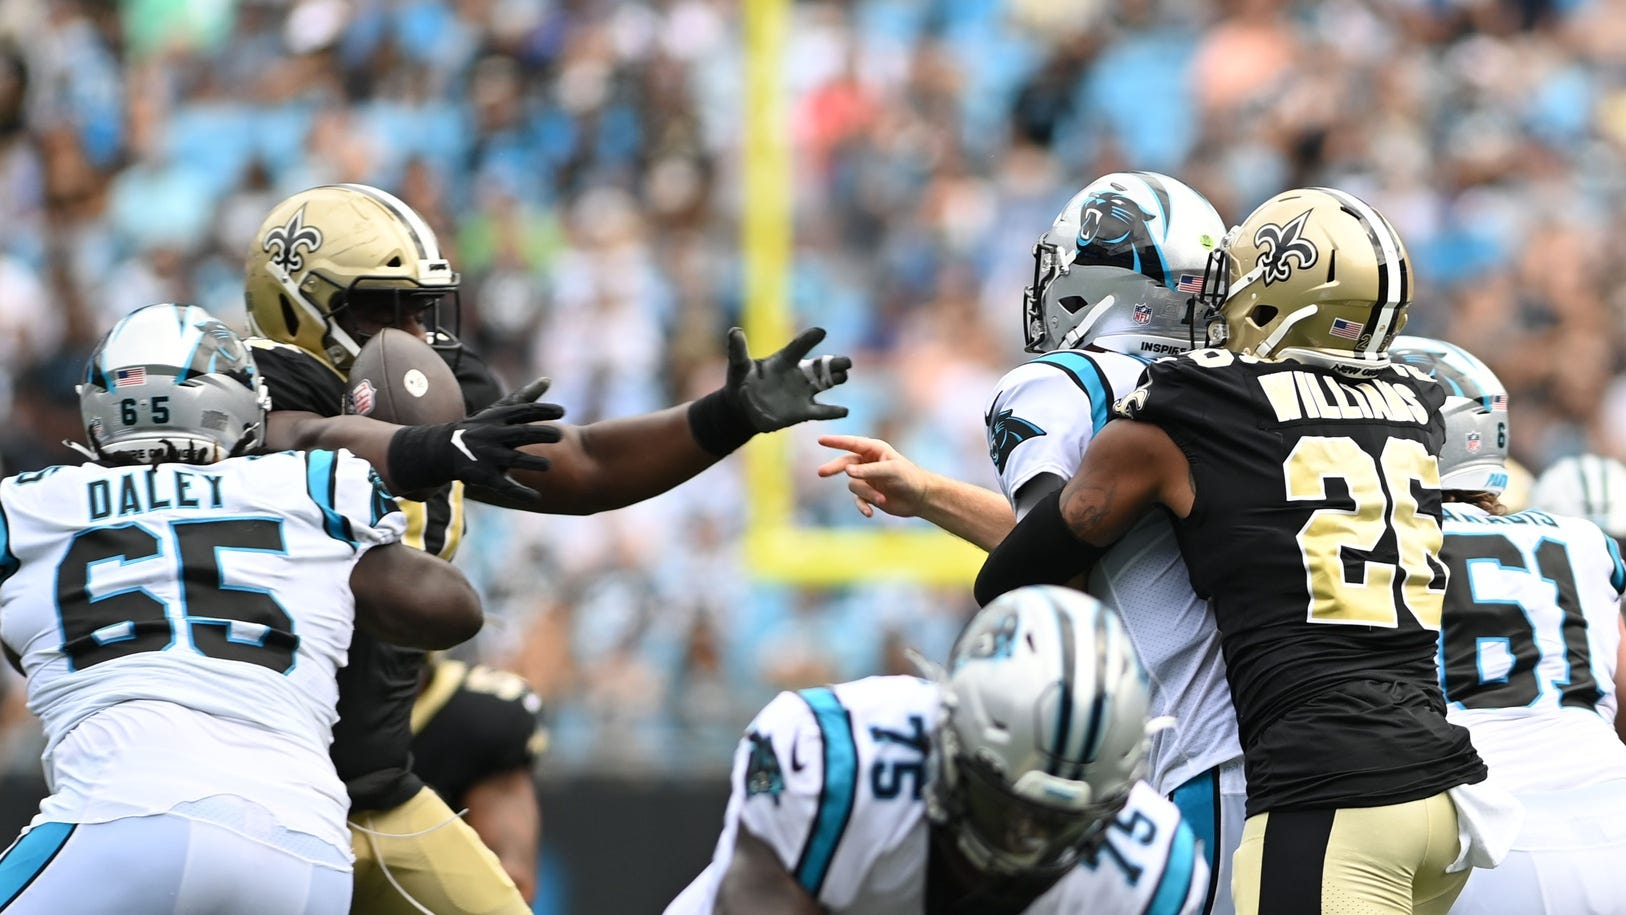 Hoss: No rest for the weary, even after Saints make long-awaited New Orleans return